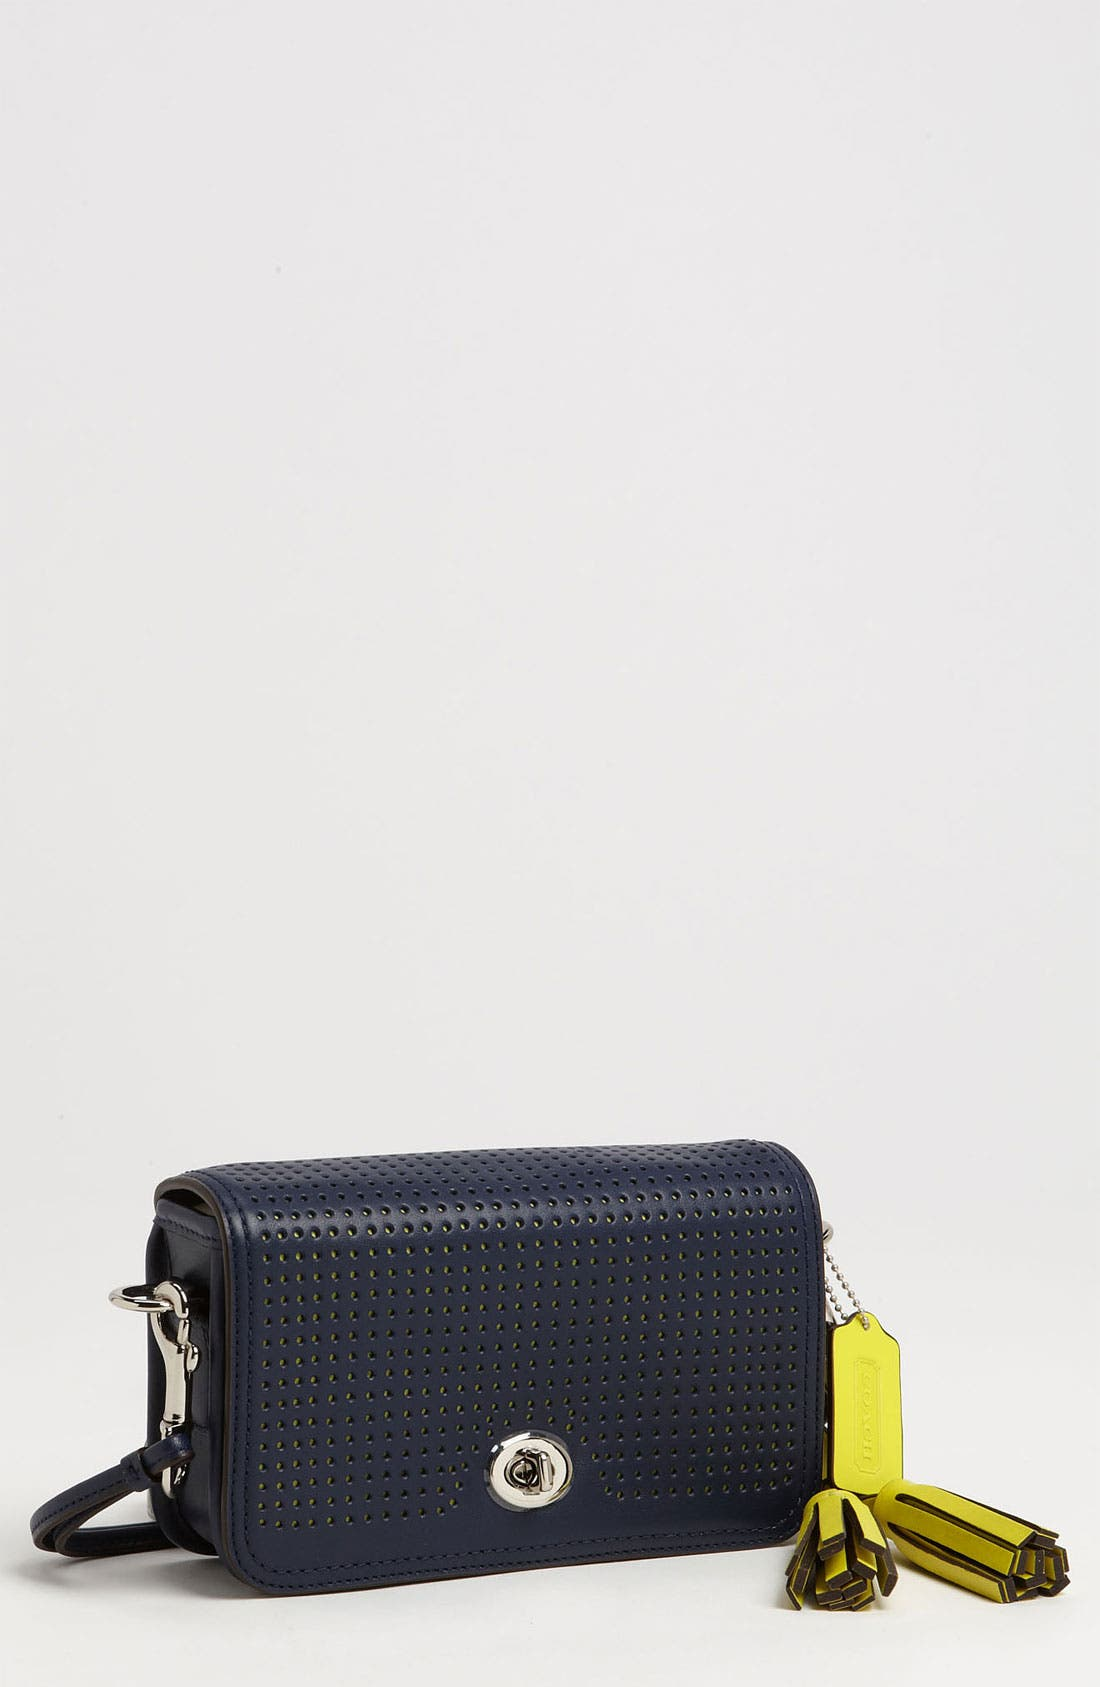 Alternate Image 1 Selected - COACH 'Legacy - Penny' Perforated Leather Crossbody Bag